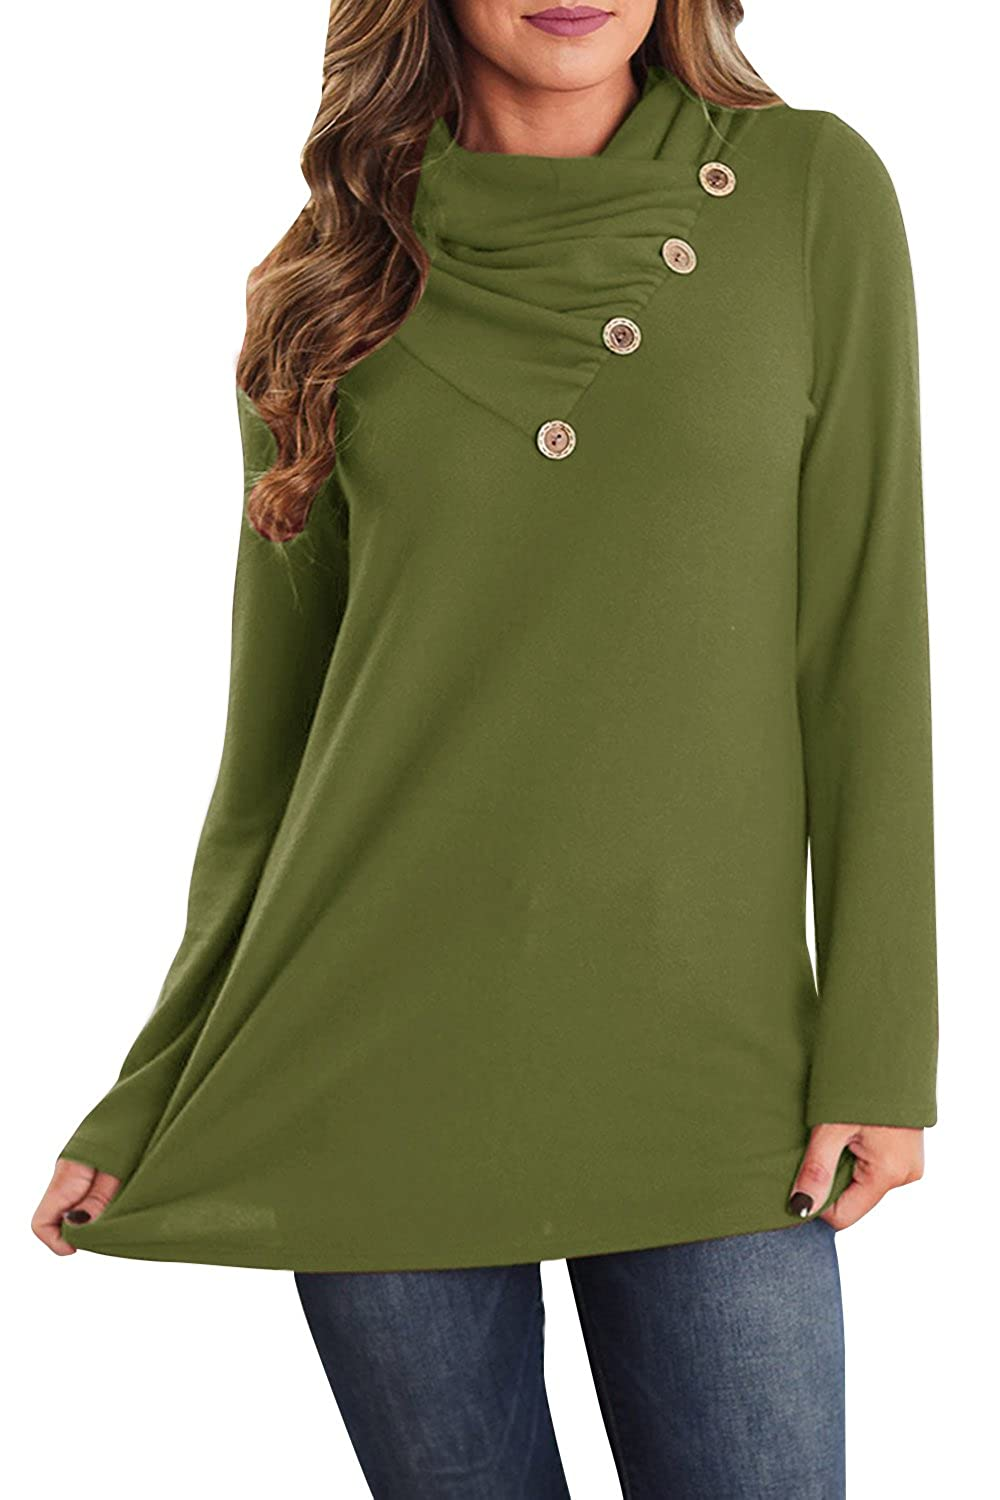 d44d156e261 Superior in material and excellent in workmanship, comfortable and warm for  daily wear. Unique design, chic and comfortable. Featuring long sleeve,  button ...